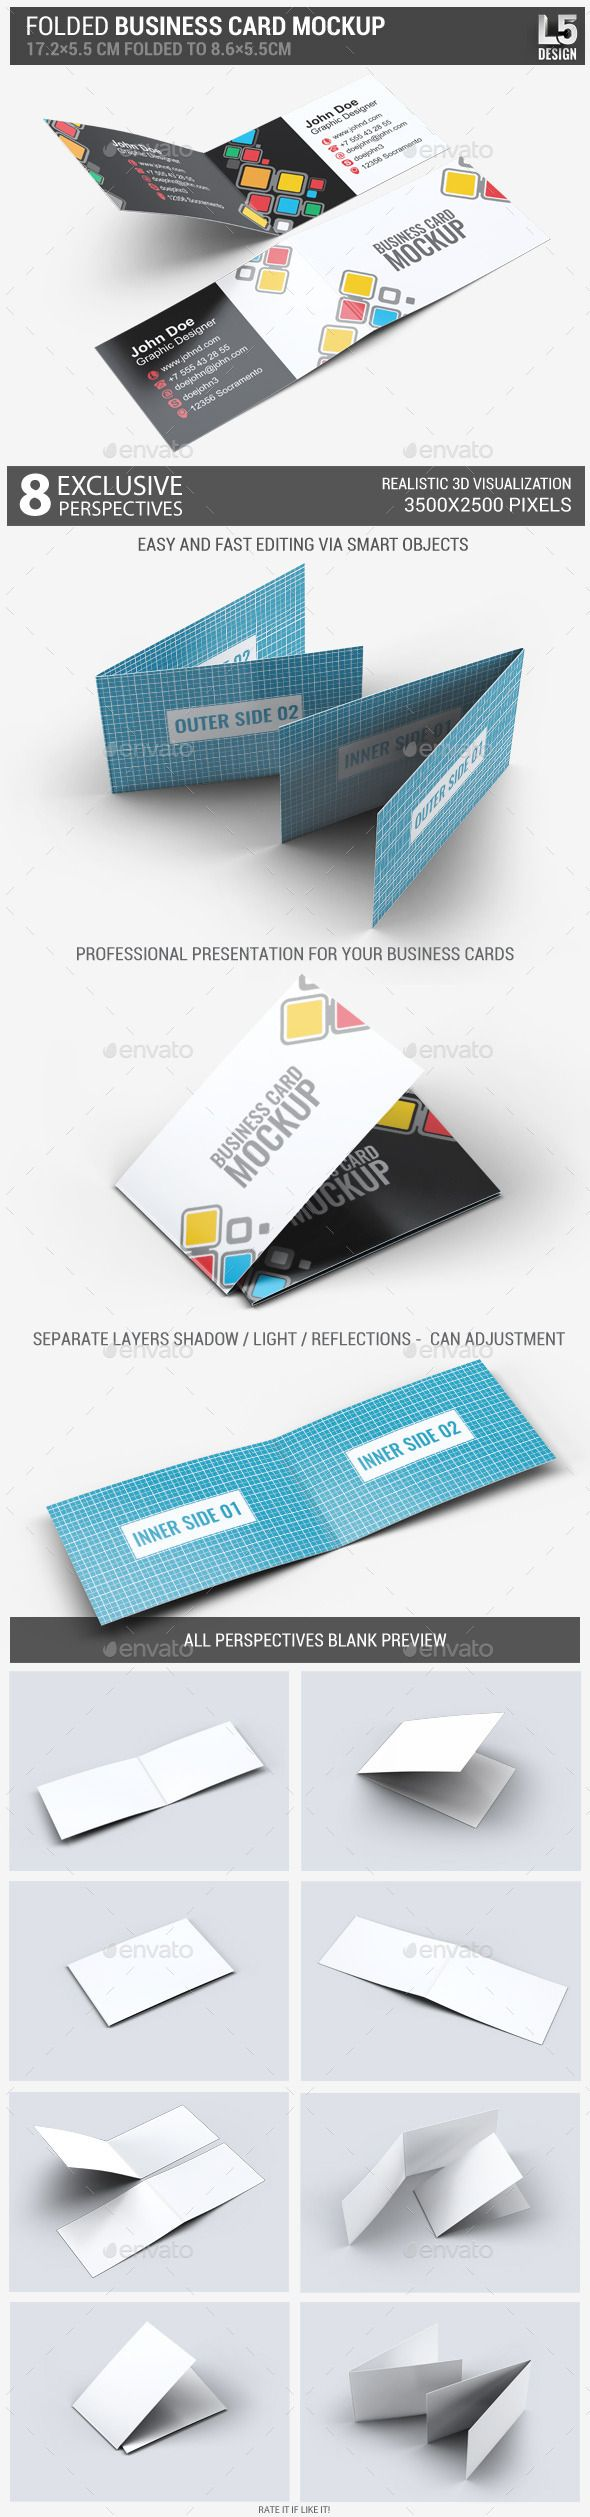 Folded Business Card Mock-Up | Pinterest | Folded business cards ...